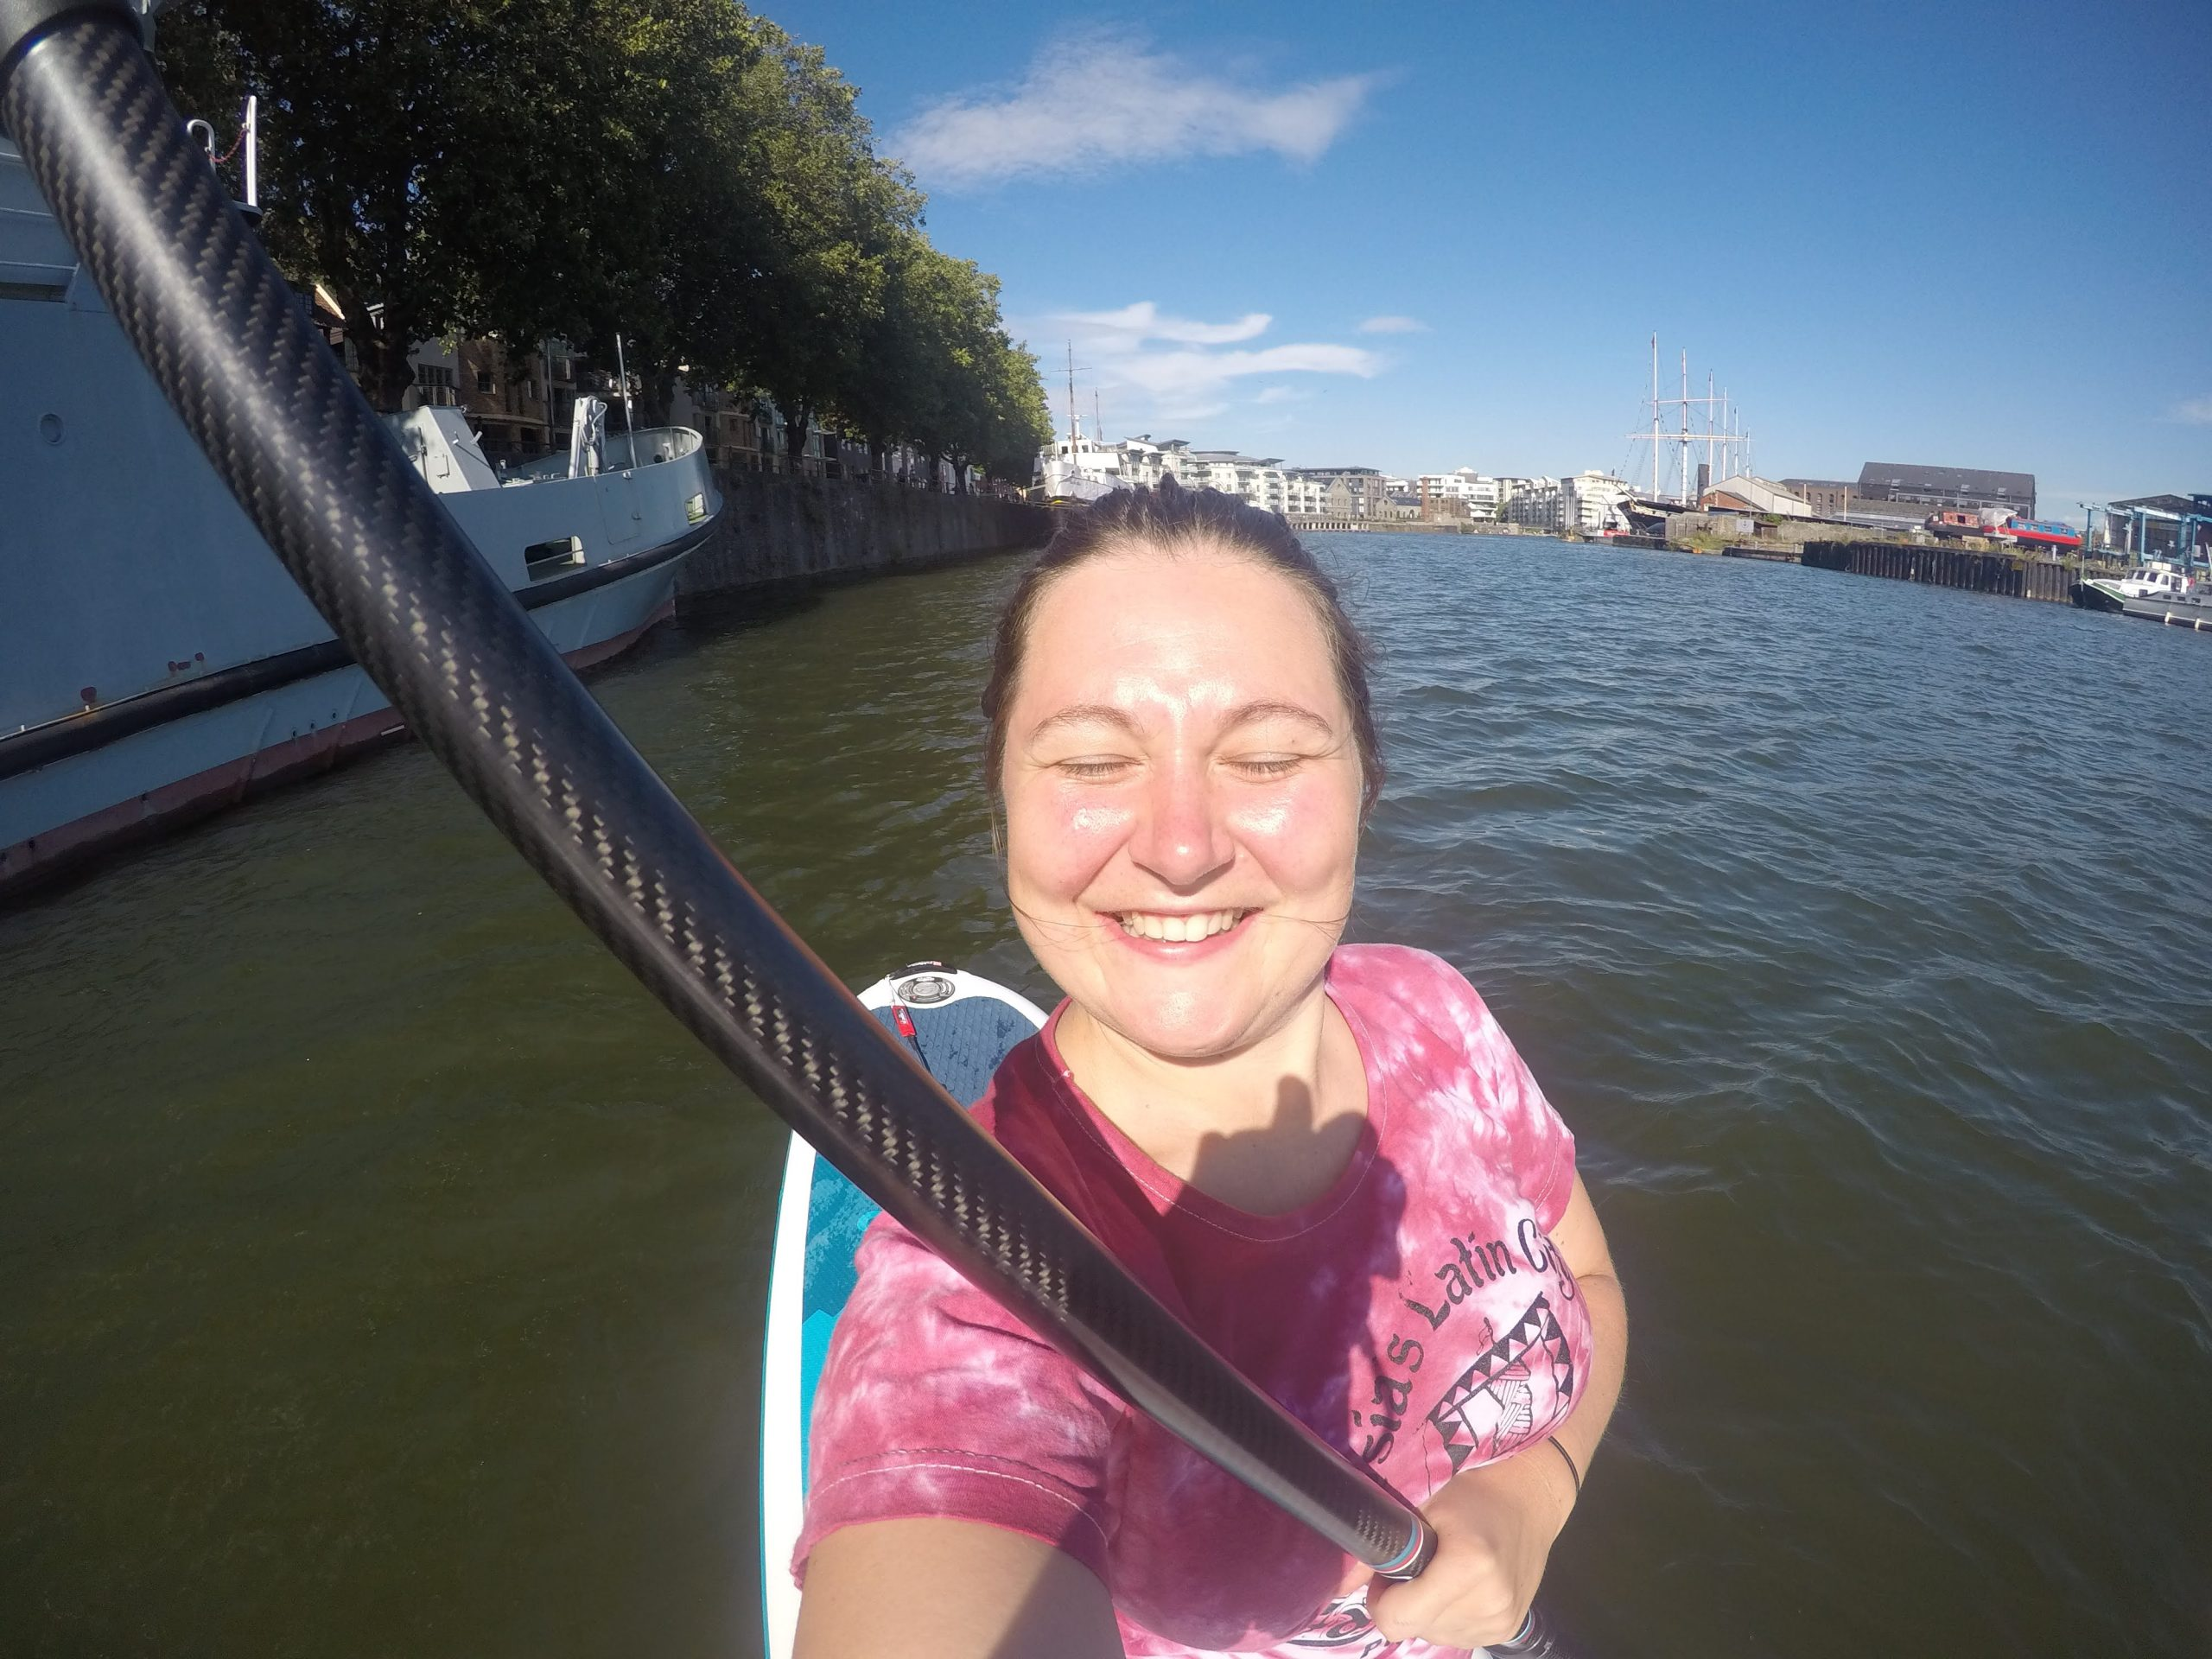 Girl stand up paddleboarding on River Avon in Bristol